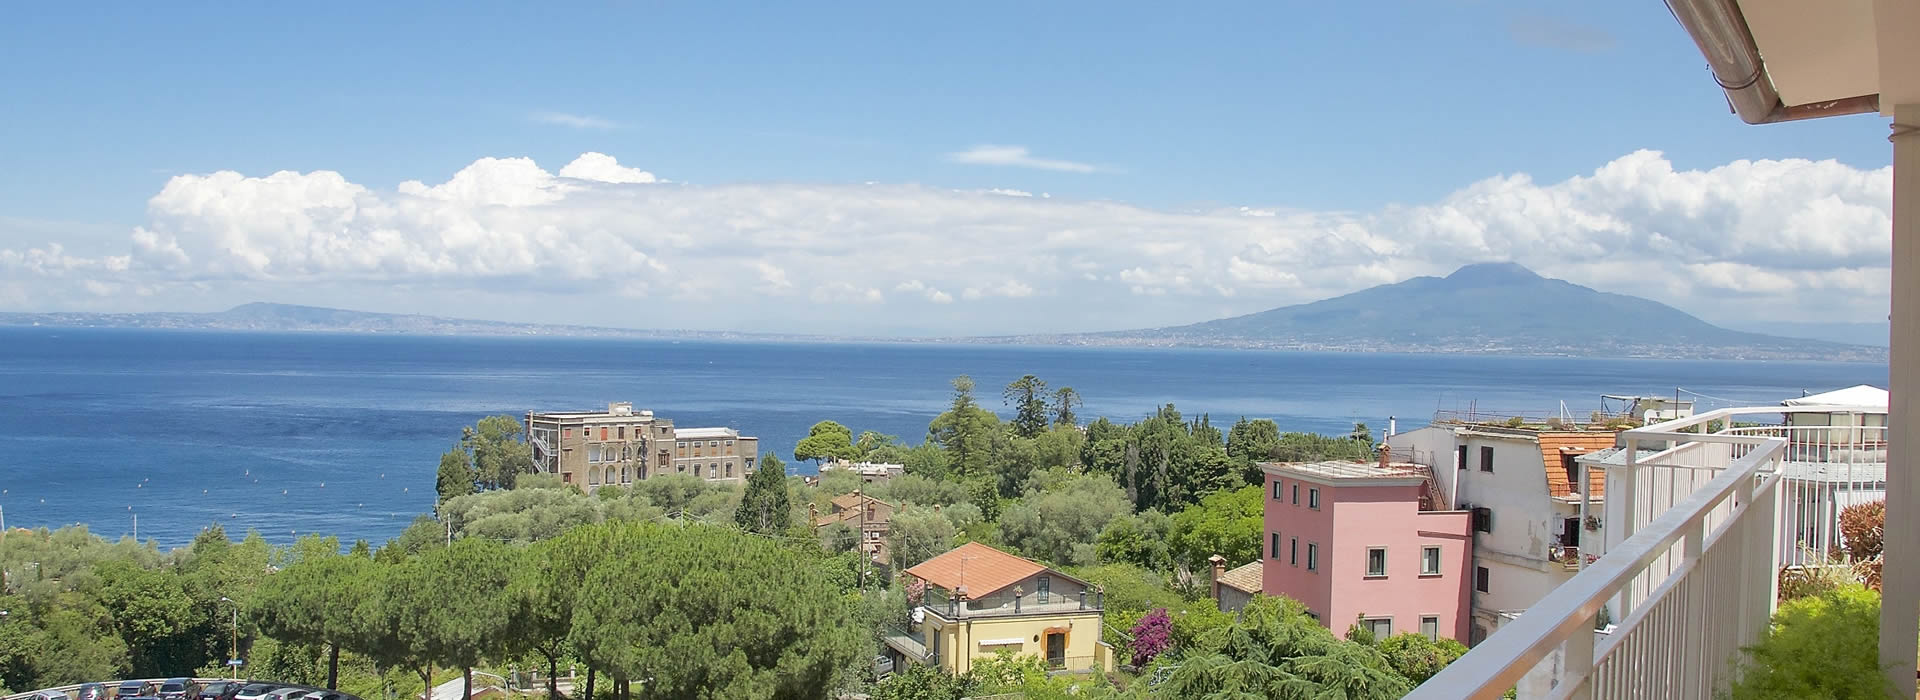 Our rooms are panoramic and equipped with every comfort. Spend an unforgettable holiday in Sorrento!